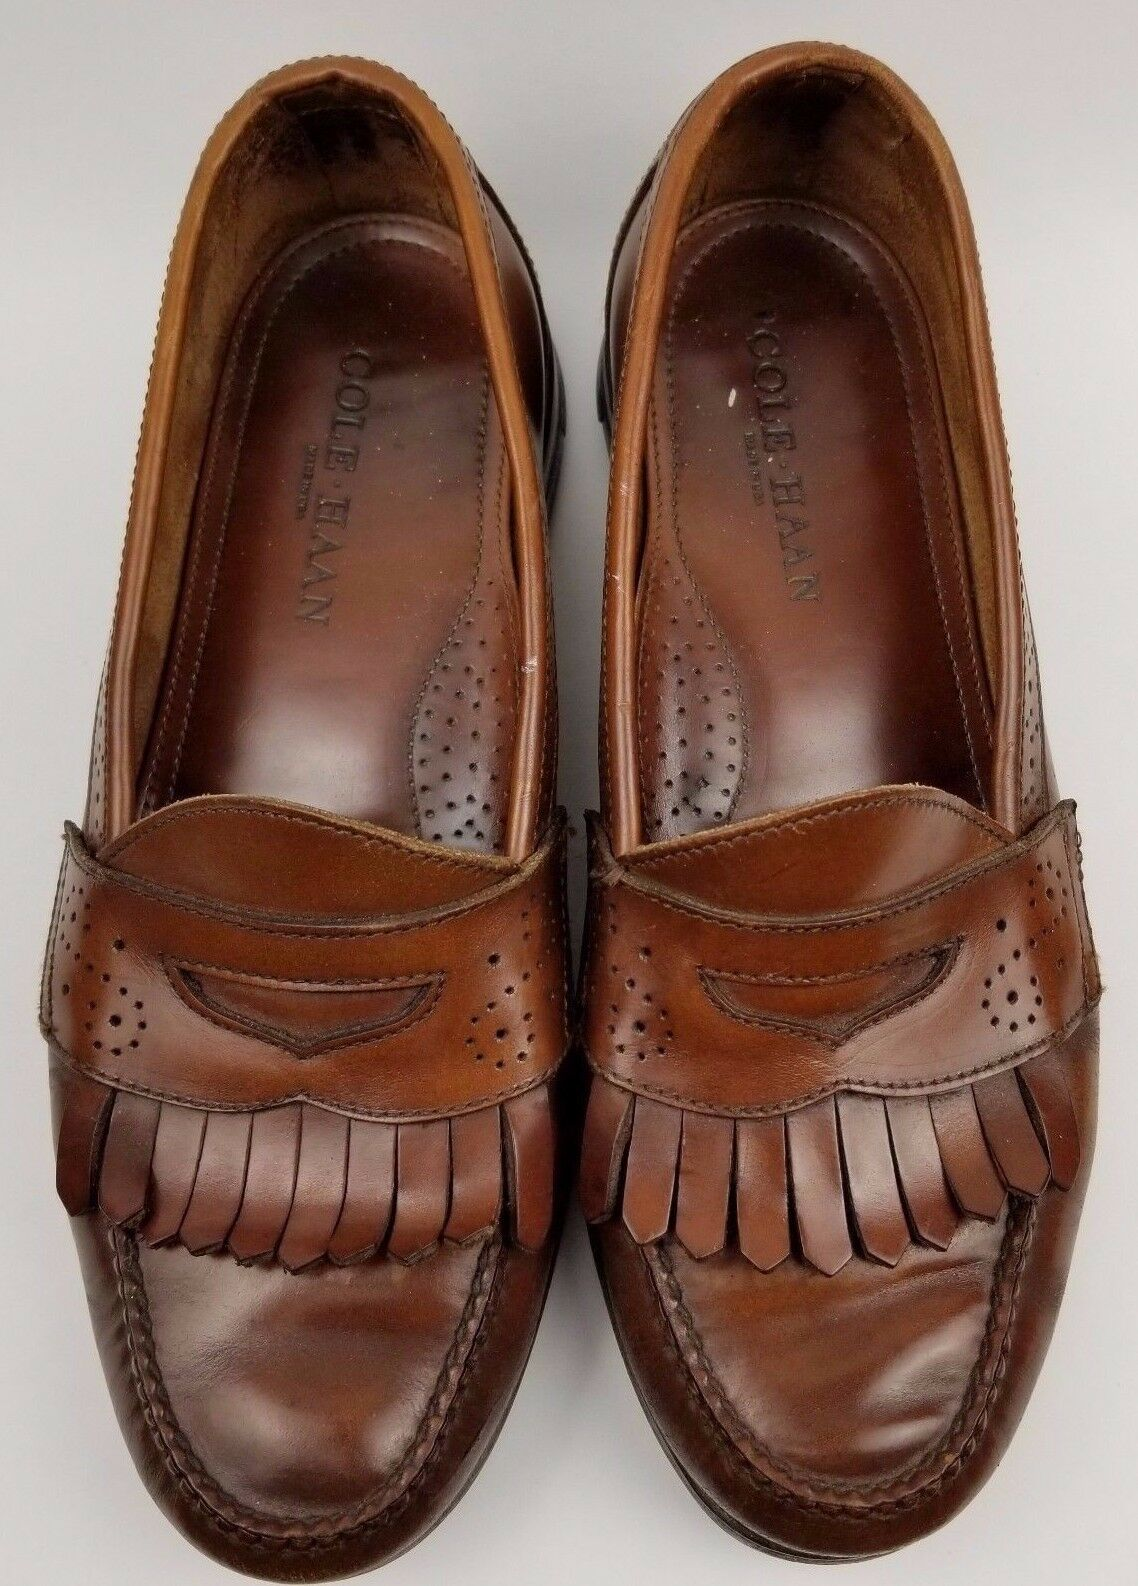 Cole Haan Brown Mens Leather Penny Loafers Drivers Dress shoes Brown Size 8 M